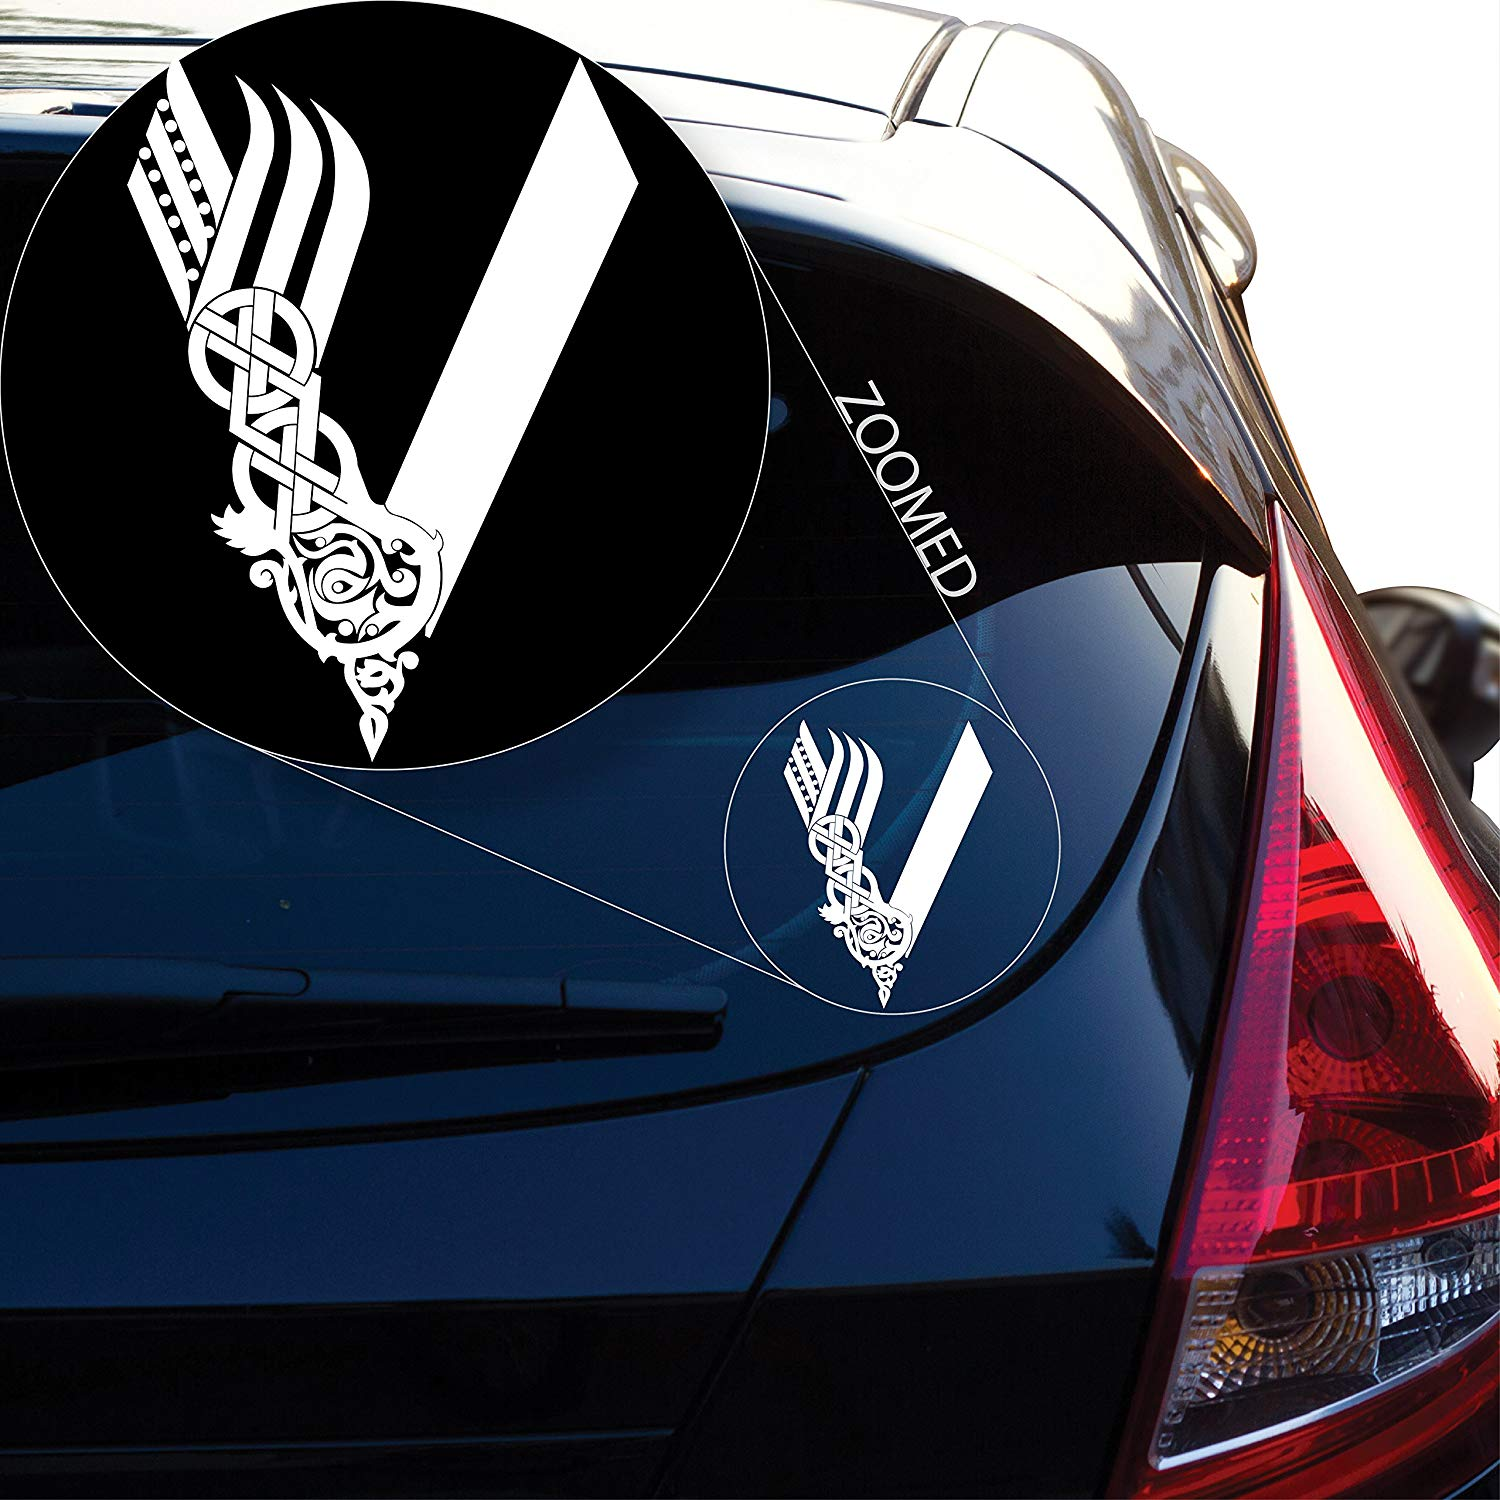 "Vikings Tv Show Decal Sticker For Car Window, Laptop And More. # 813 (8"" X 5.7"", White)"